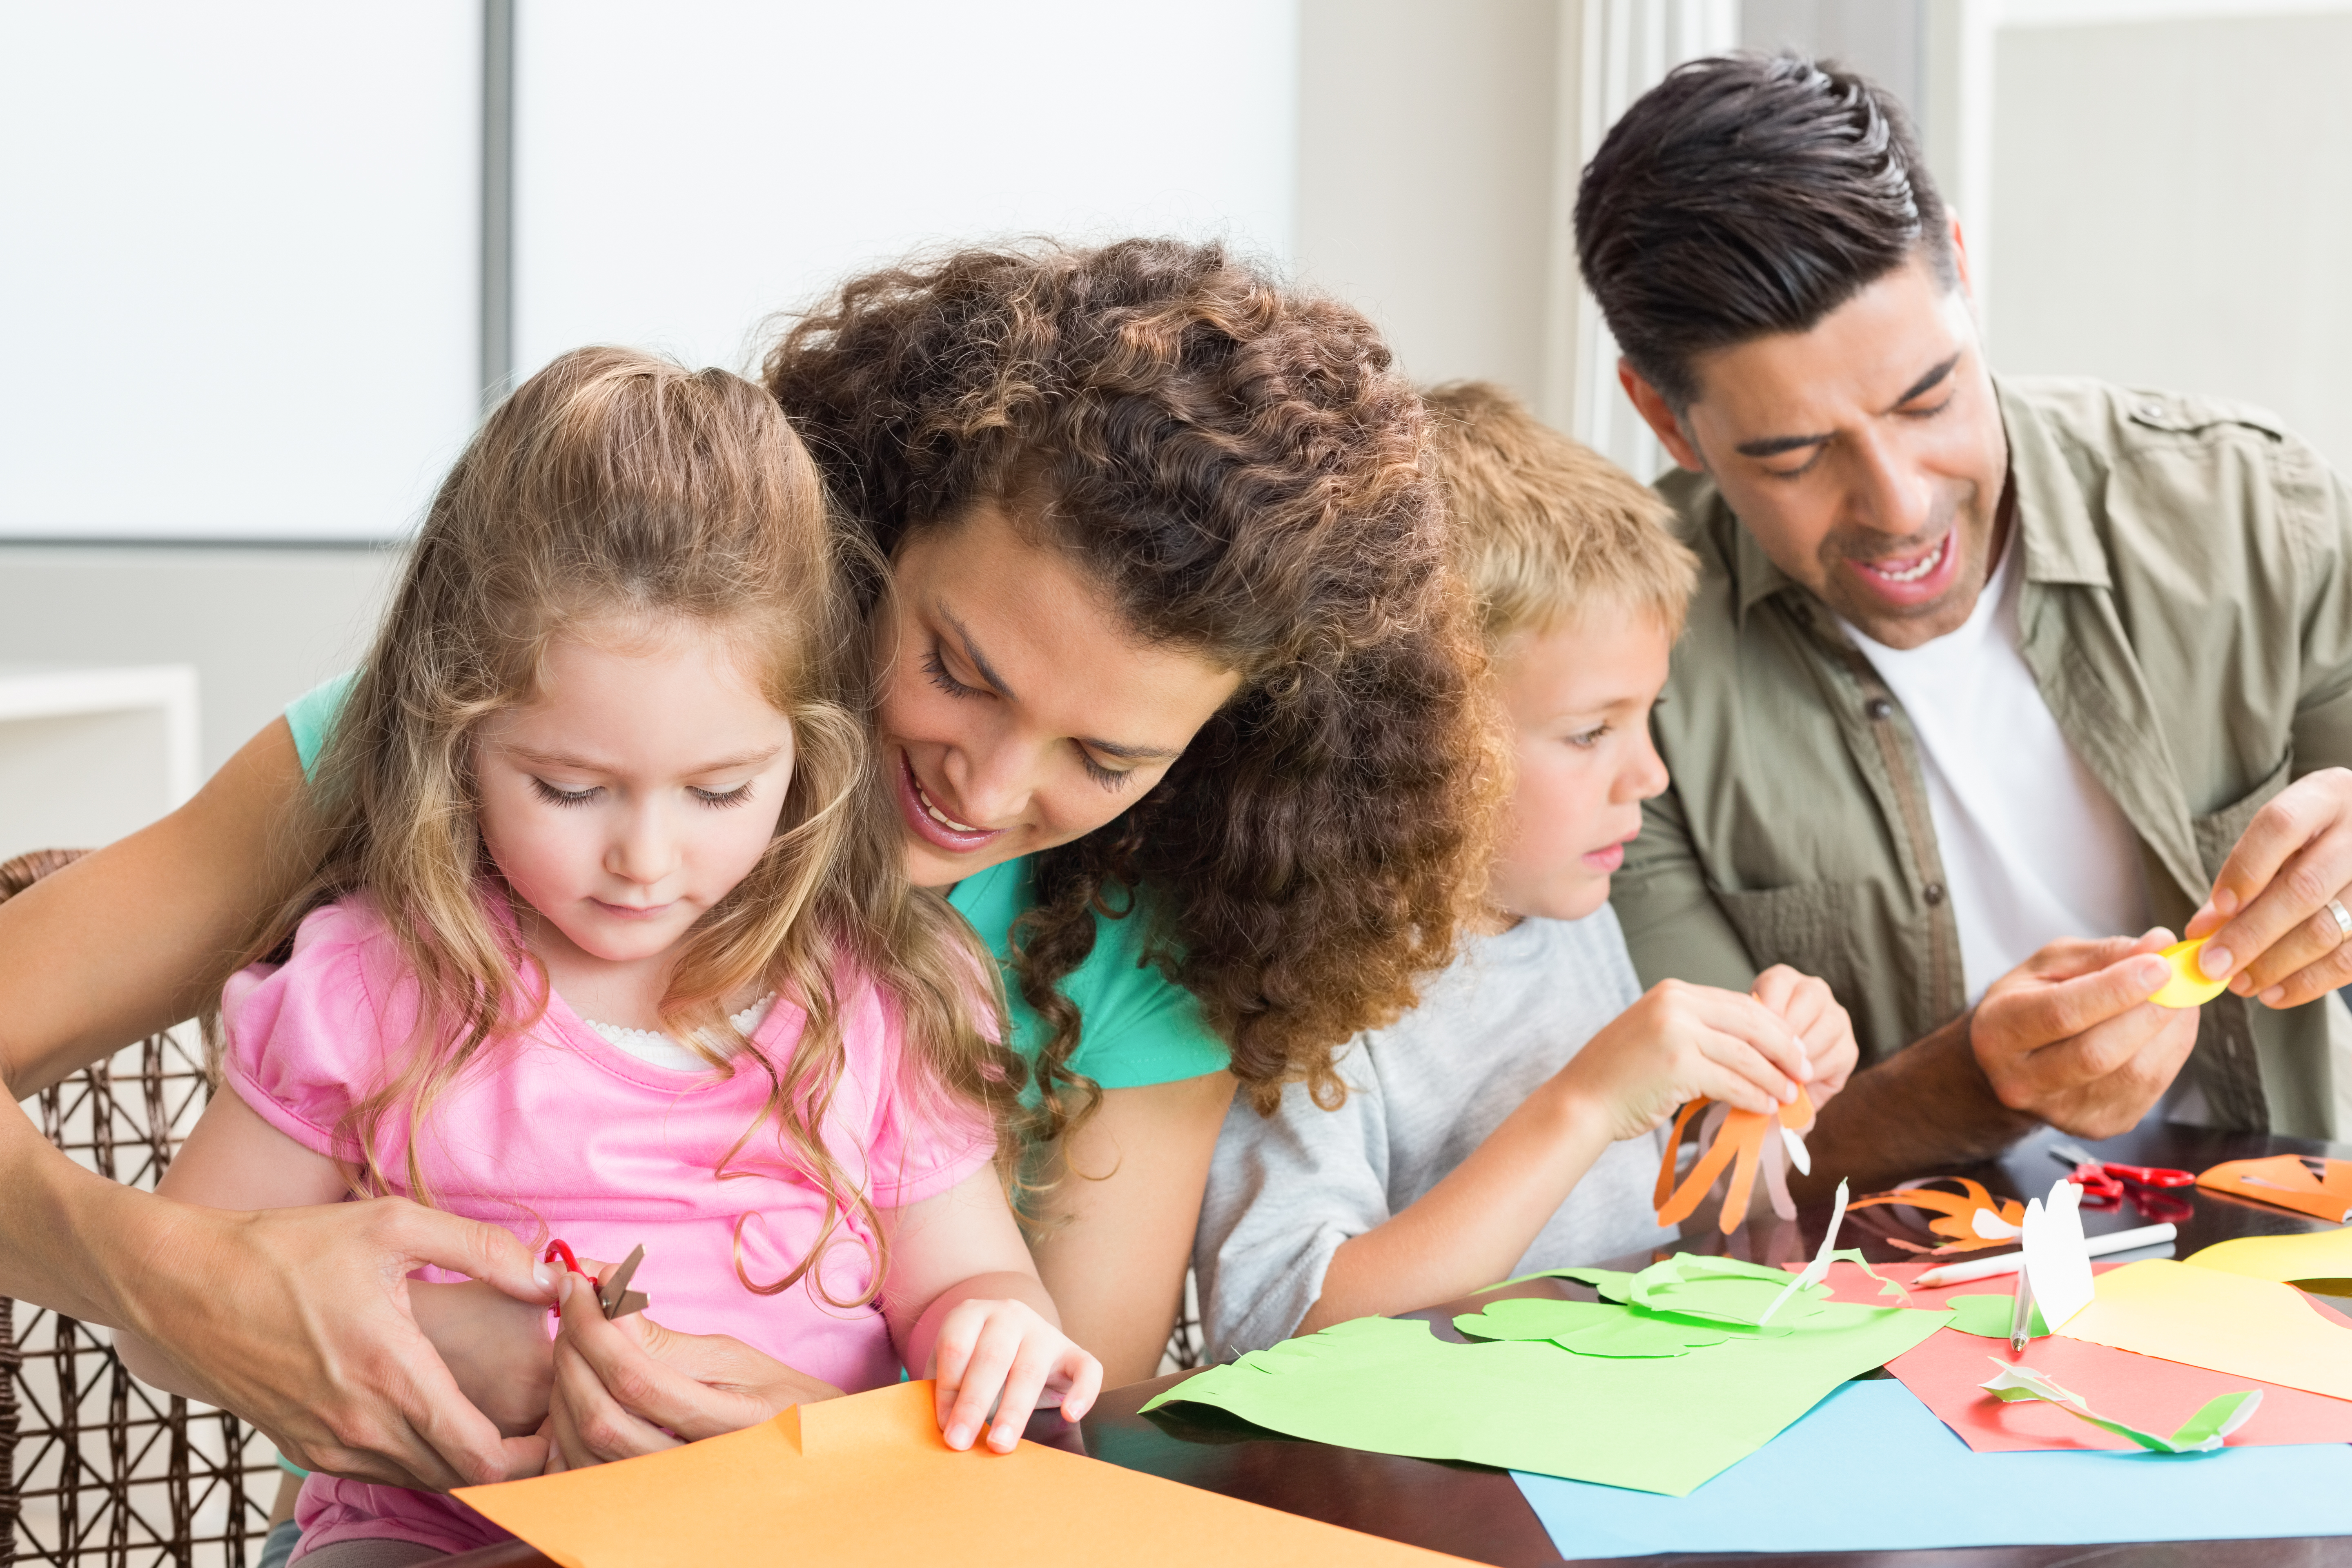 bigstock-Cheerful-family-doing-arts-and-60522305